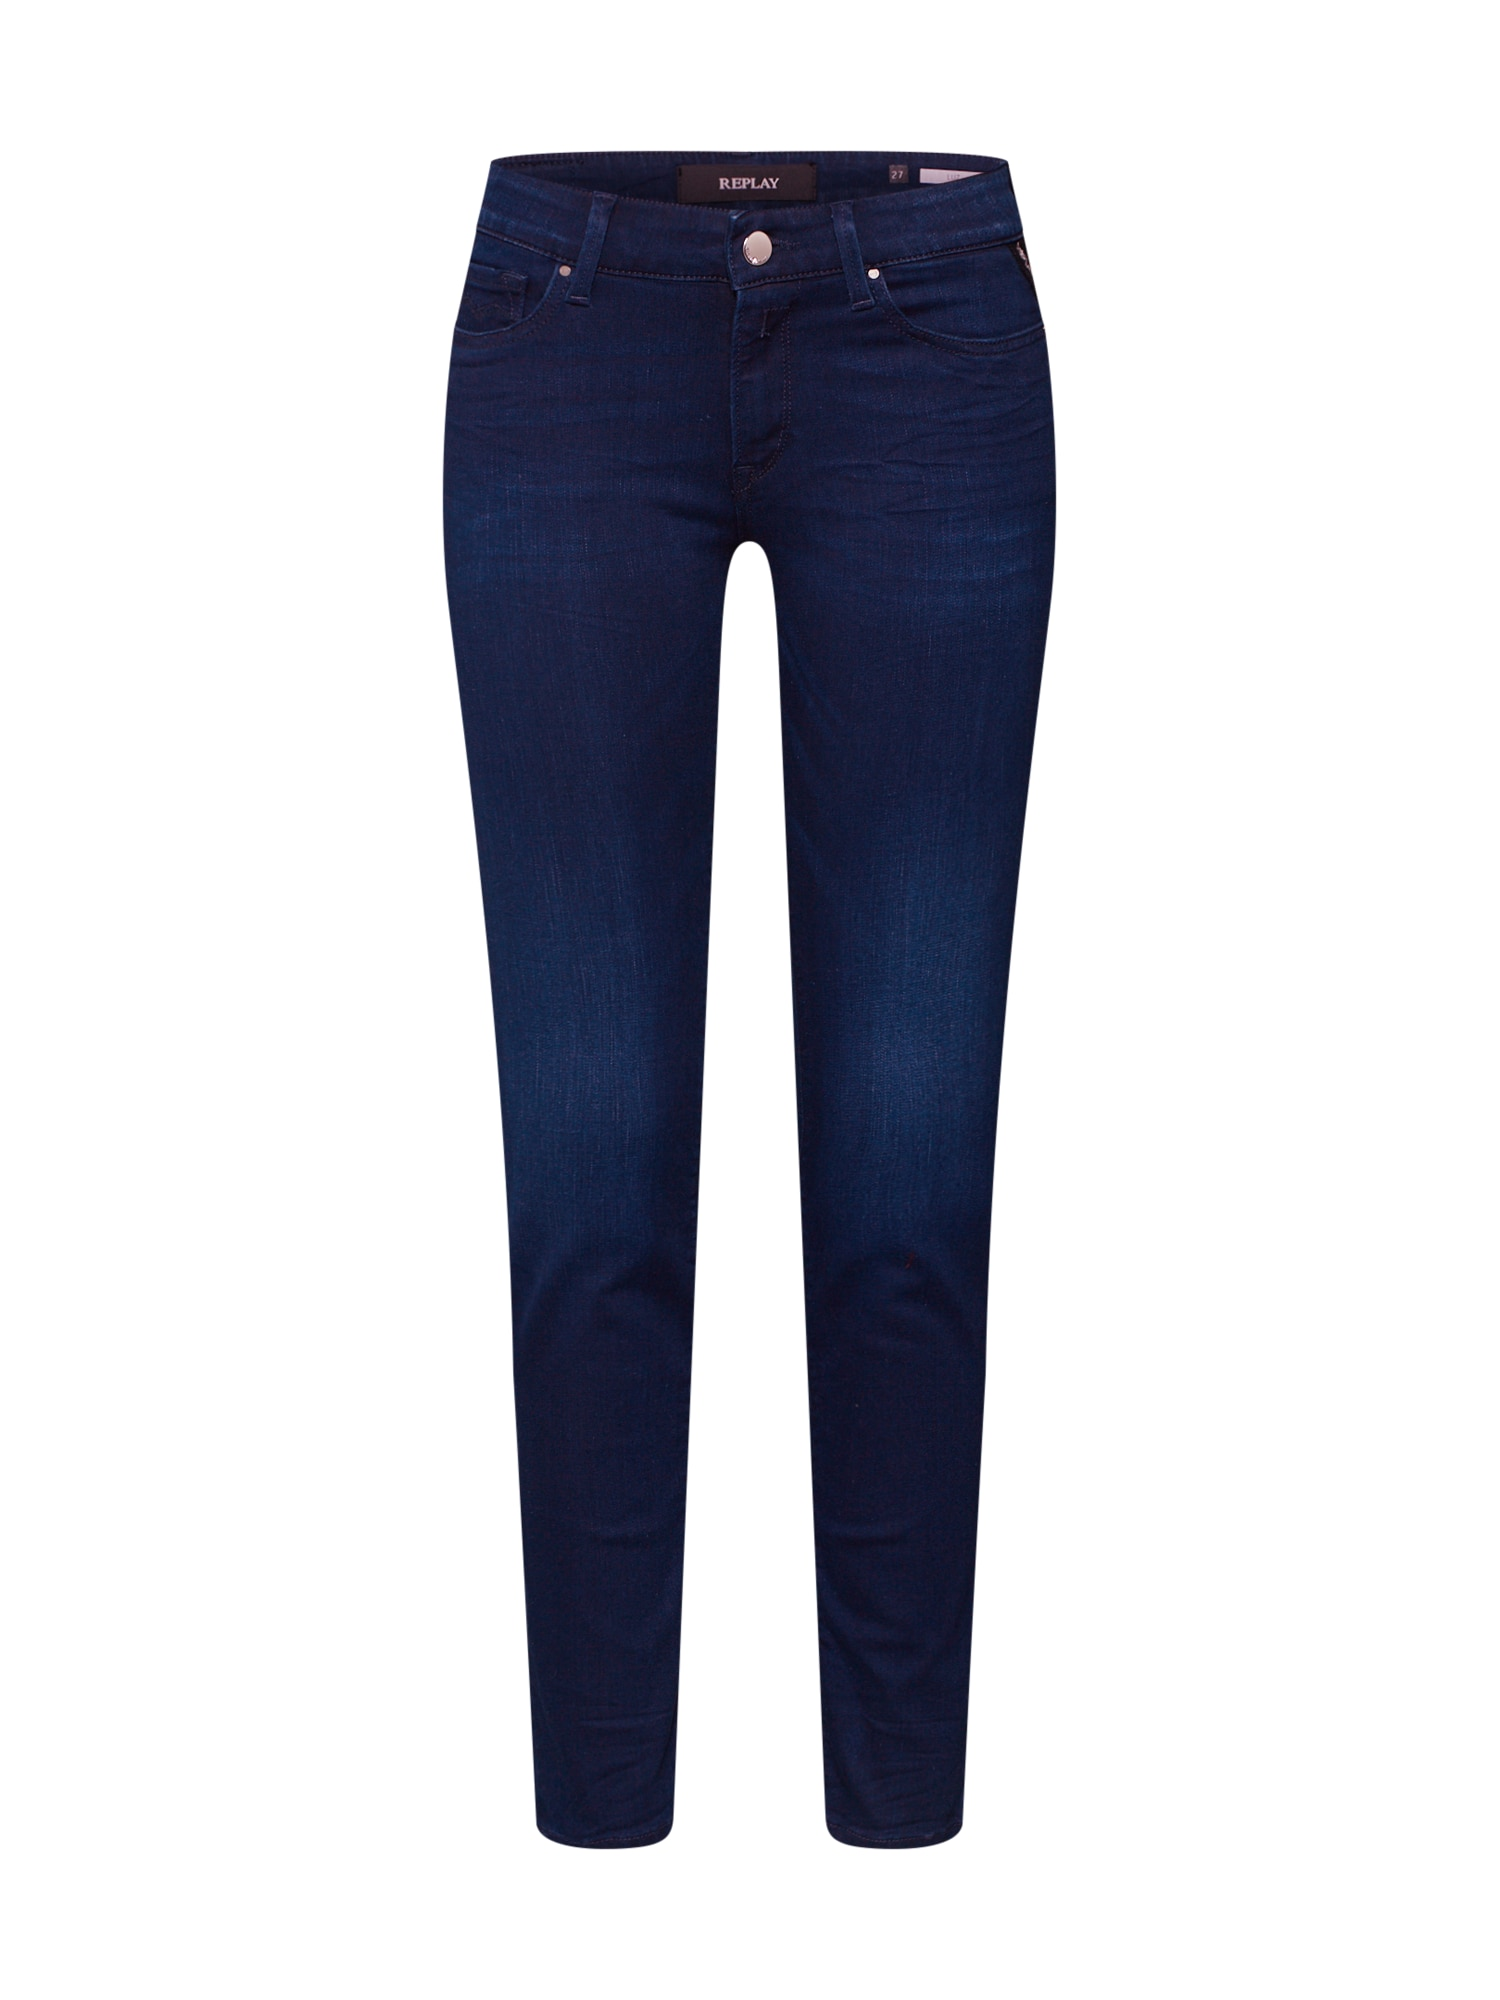 REPLAY Jeans 'LUZ HIGH WAIST Pants'  albastru